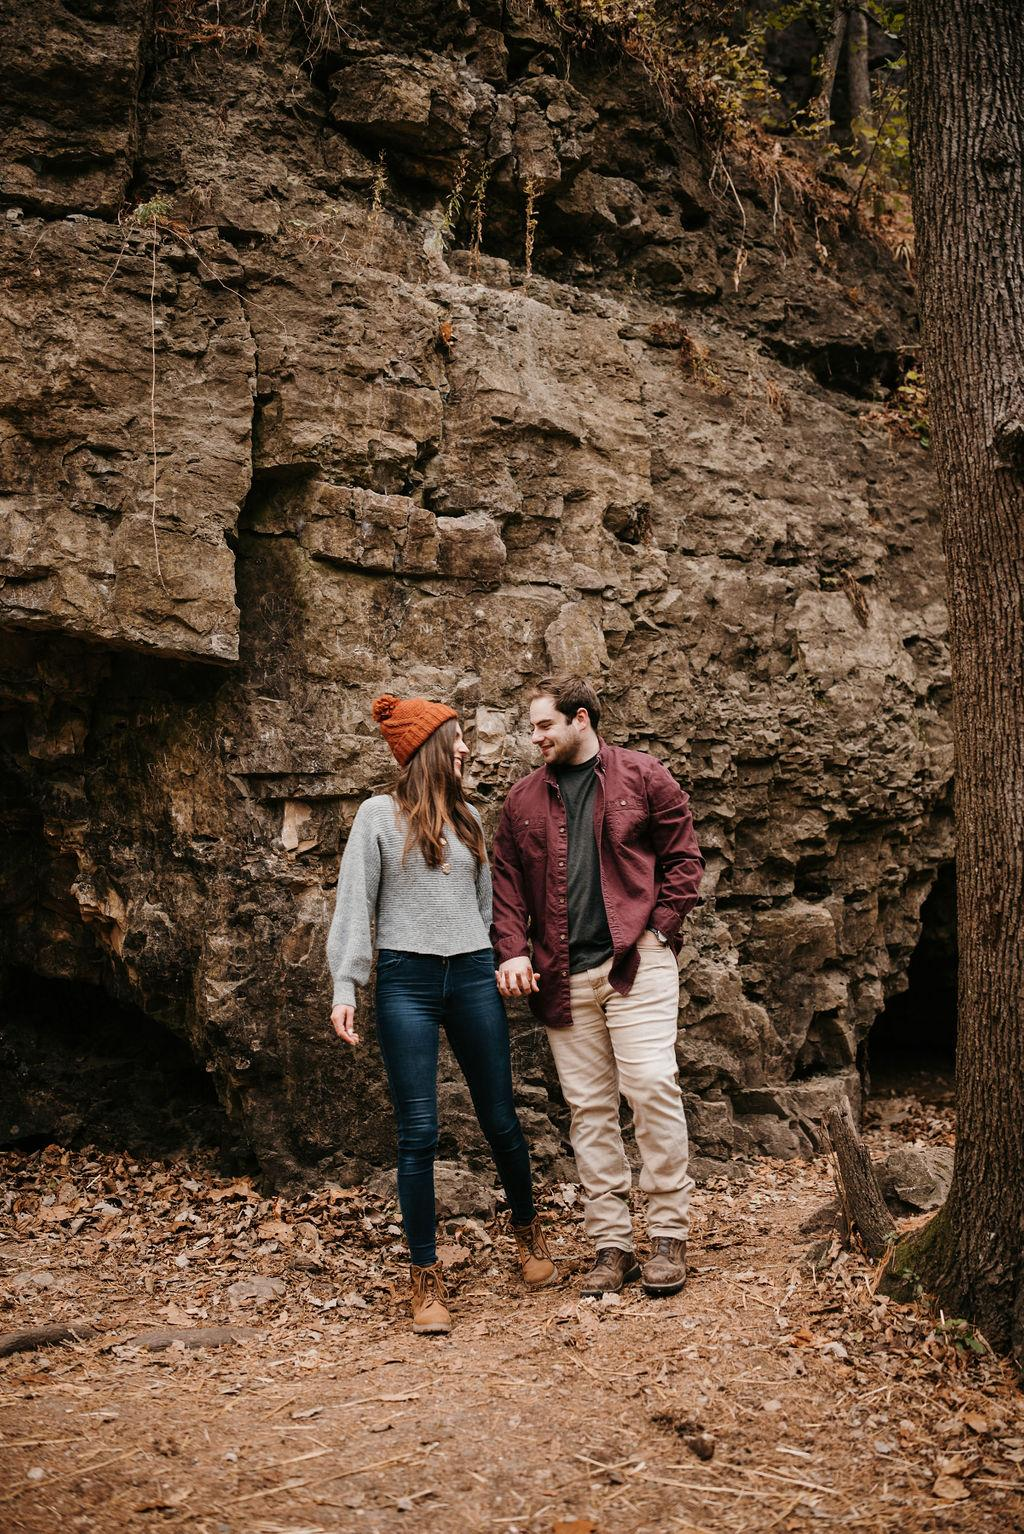 Morgan and Garrett are holding hands and smiling at each other in front of a cliff. Morgan is wearing an orange beanie.